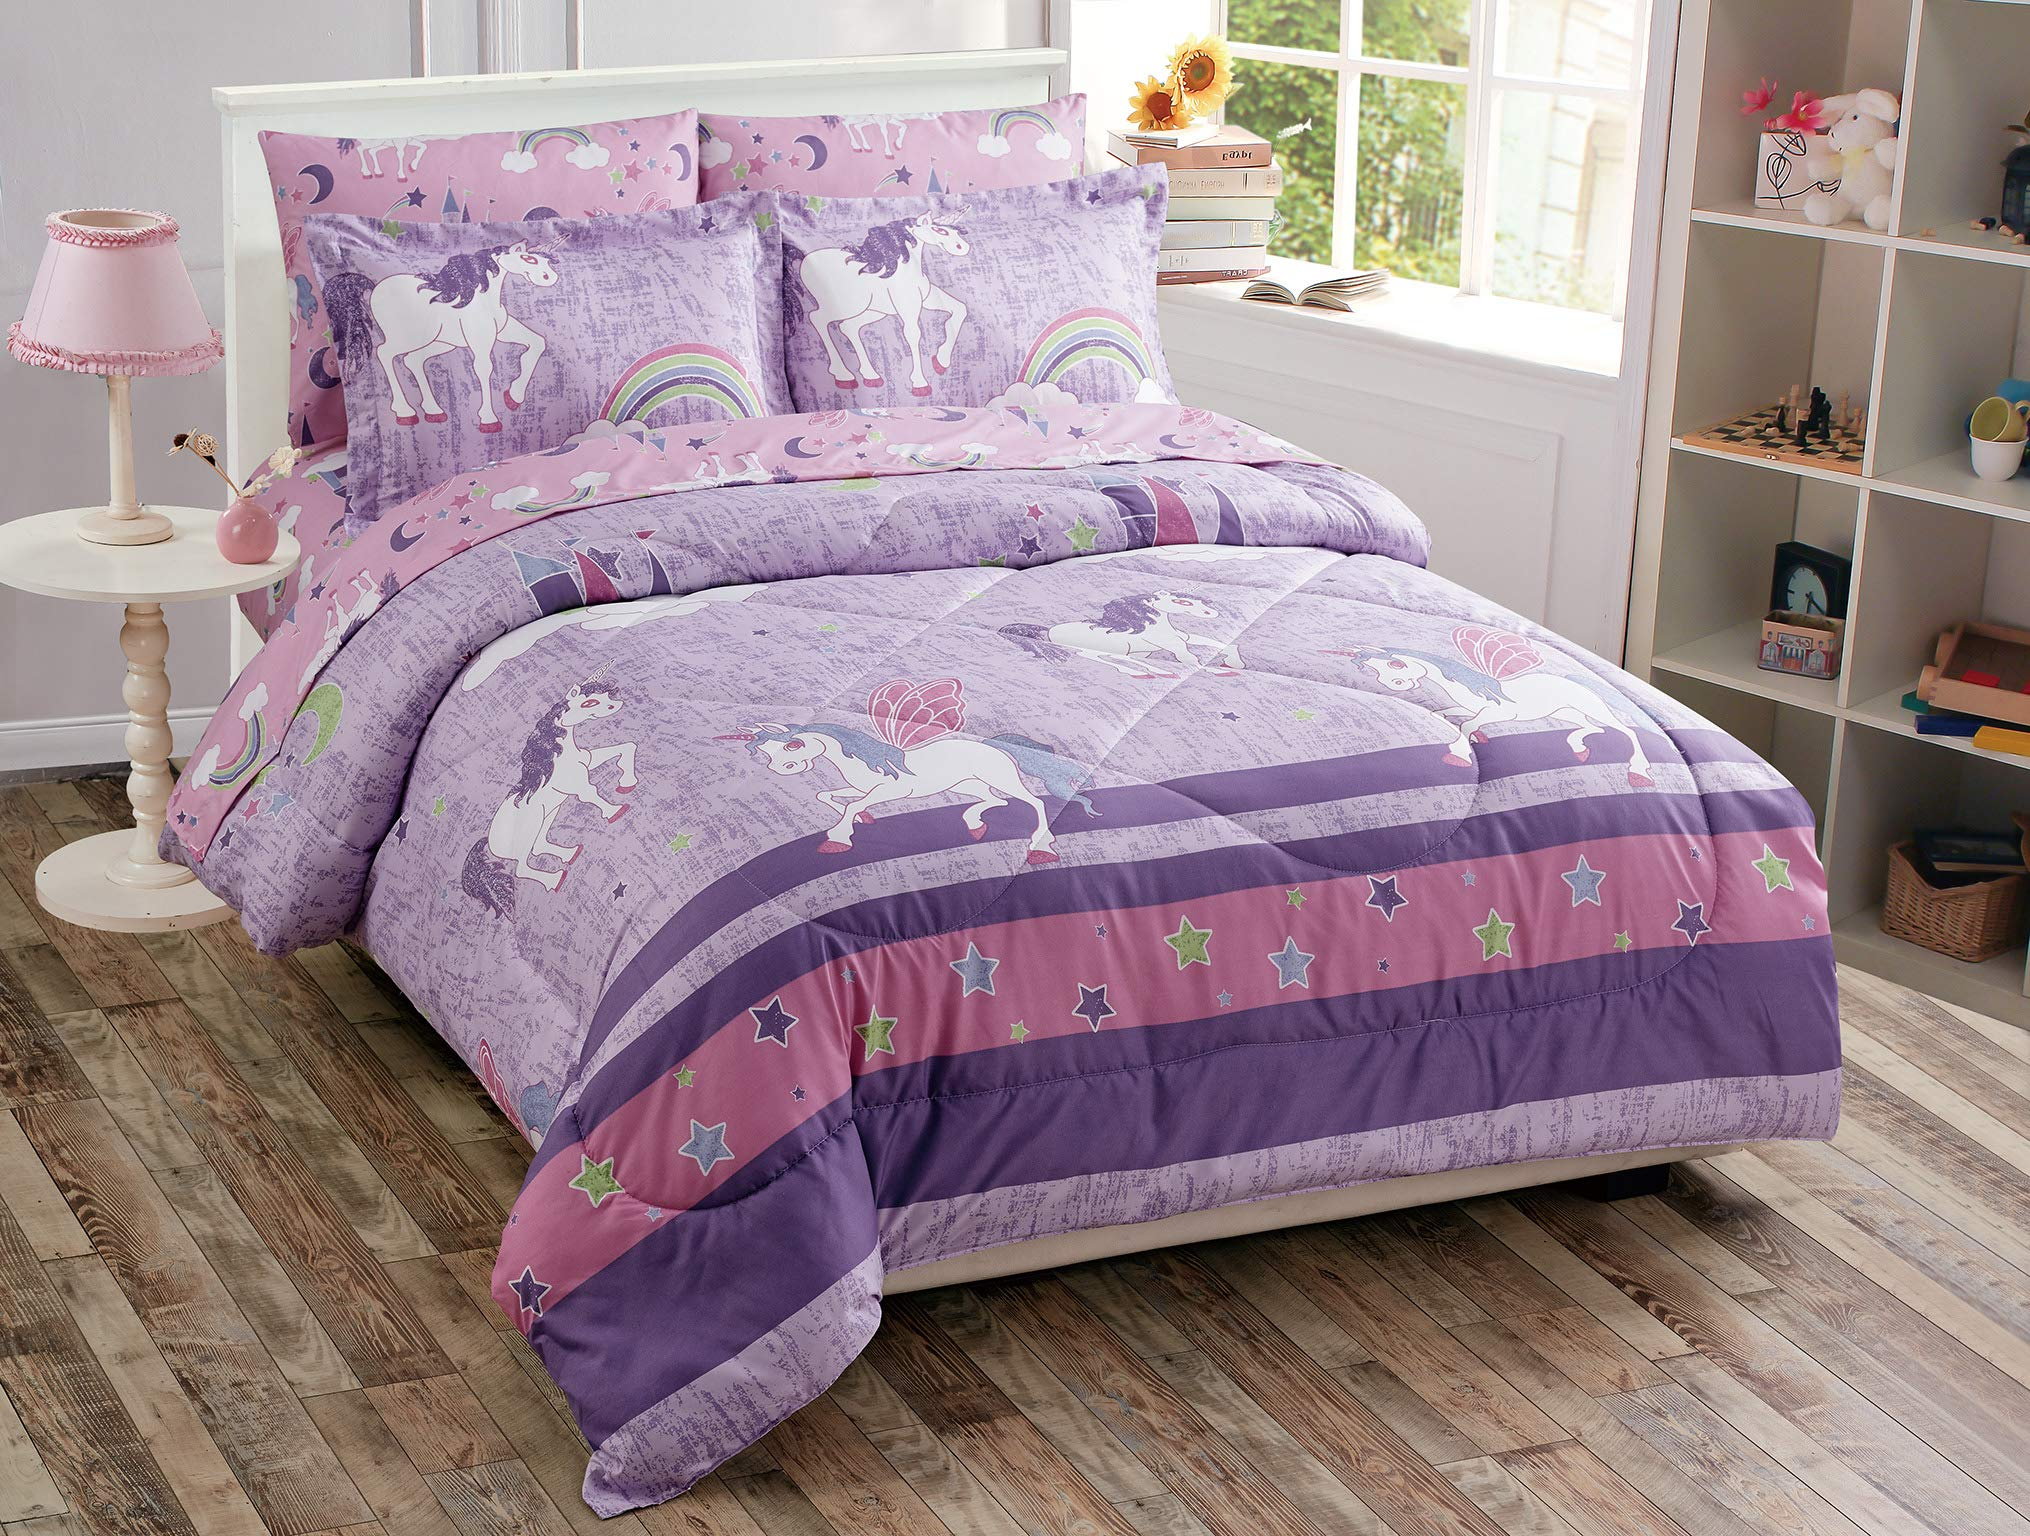 Luxury Home Collection 5 Piece Twin Size Comforter Set for Girls/Teens Unicorn Castle Rainbow Clouds Moon Shining Stars Lavender Pink Blue Yellow (Twin Comforter)